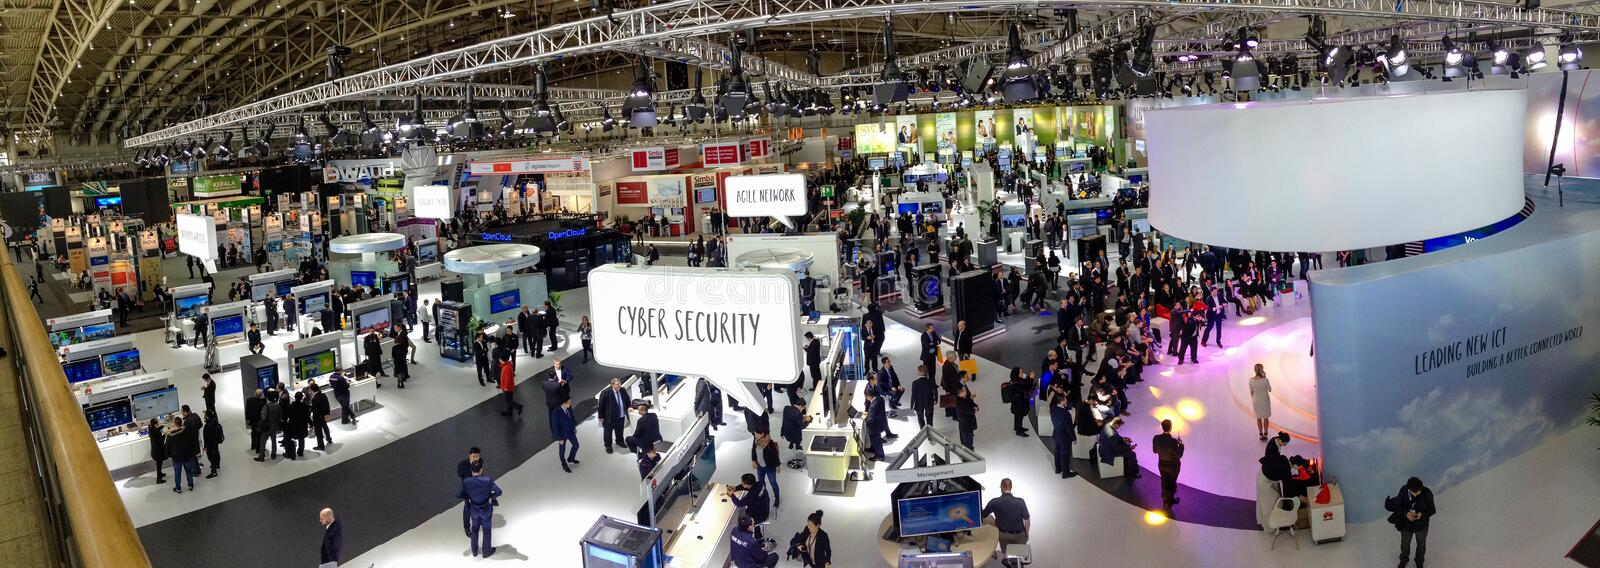 Hall 2 at CeBIT information technology trade show. HANNOVER, GERMANY - MARCH 15, 2016: Hall 2 at CeBIT information technology trade show in Hannover, Germany on stock photos